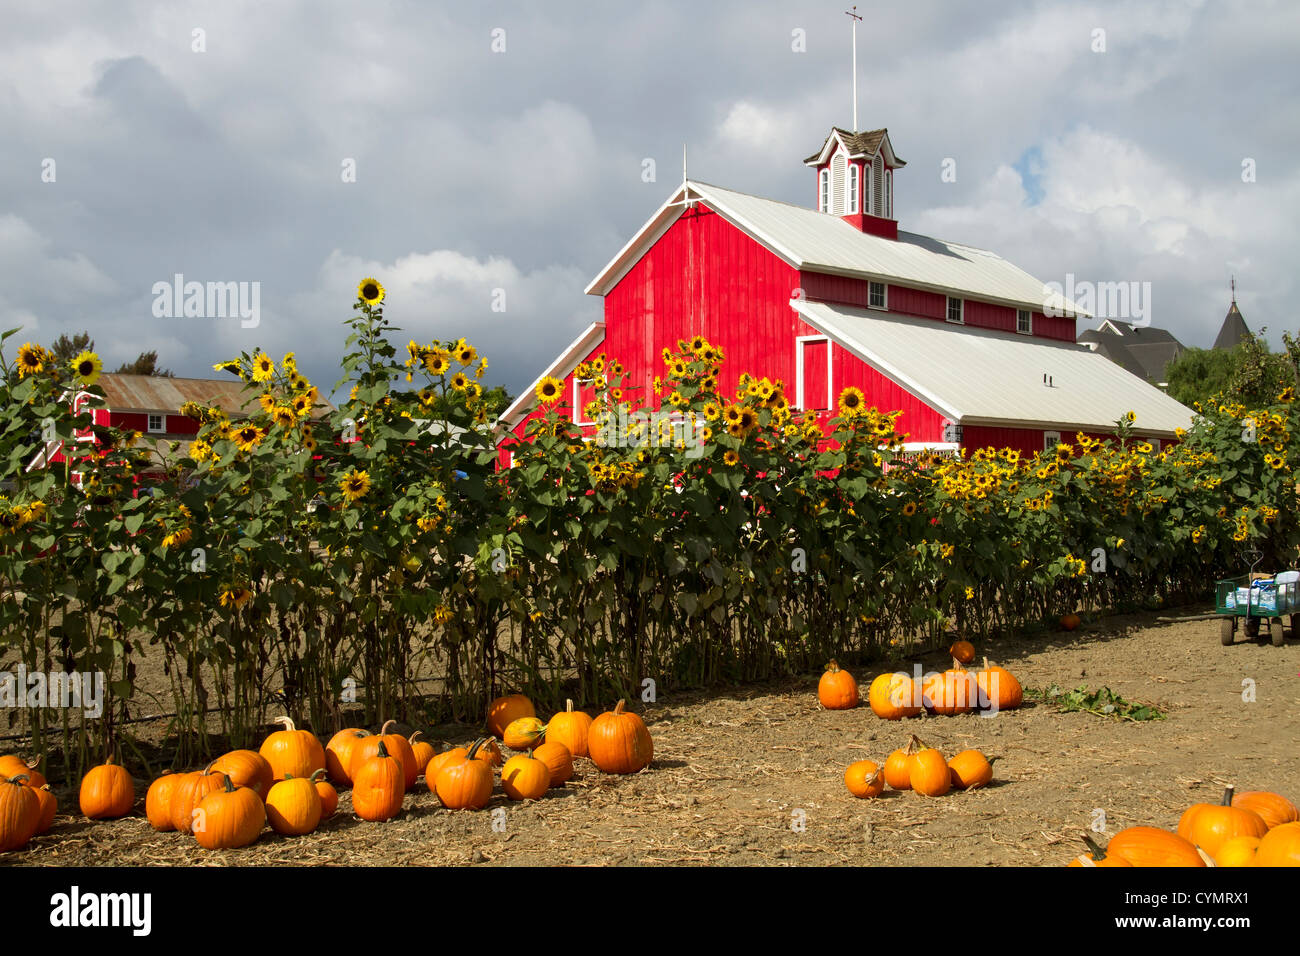 Pumpkin patch with a red barn in the background Stock ...